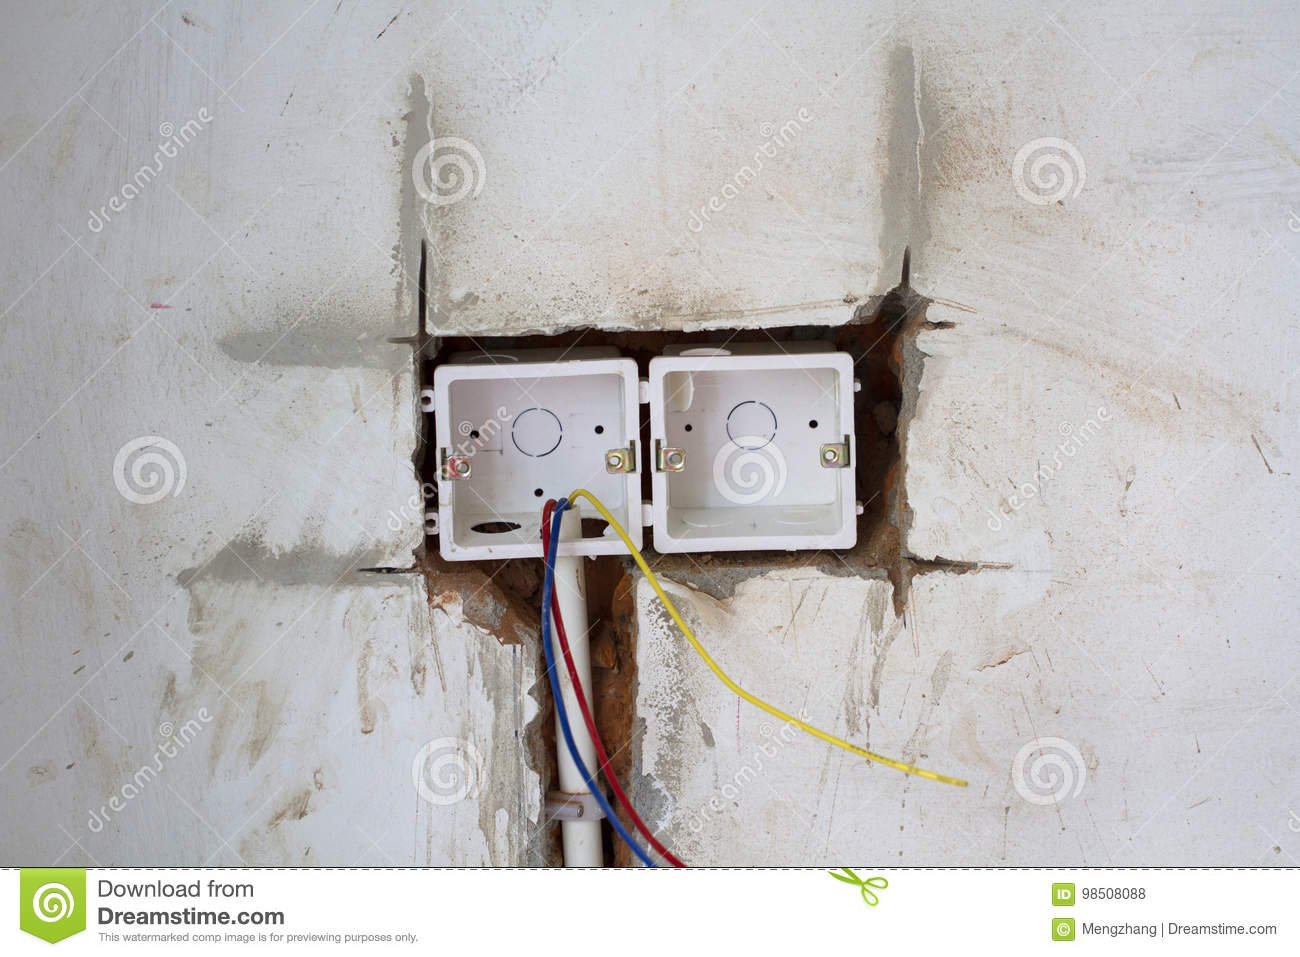 Electrical renovation work stock photo. Image of industrial - 98508088